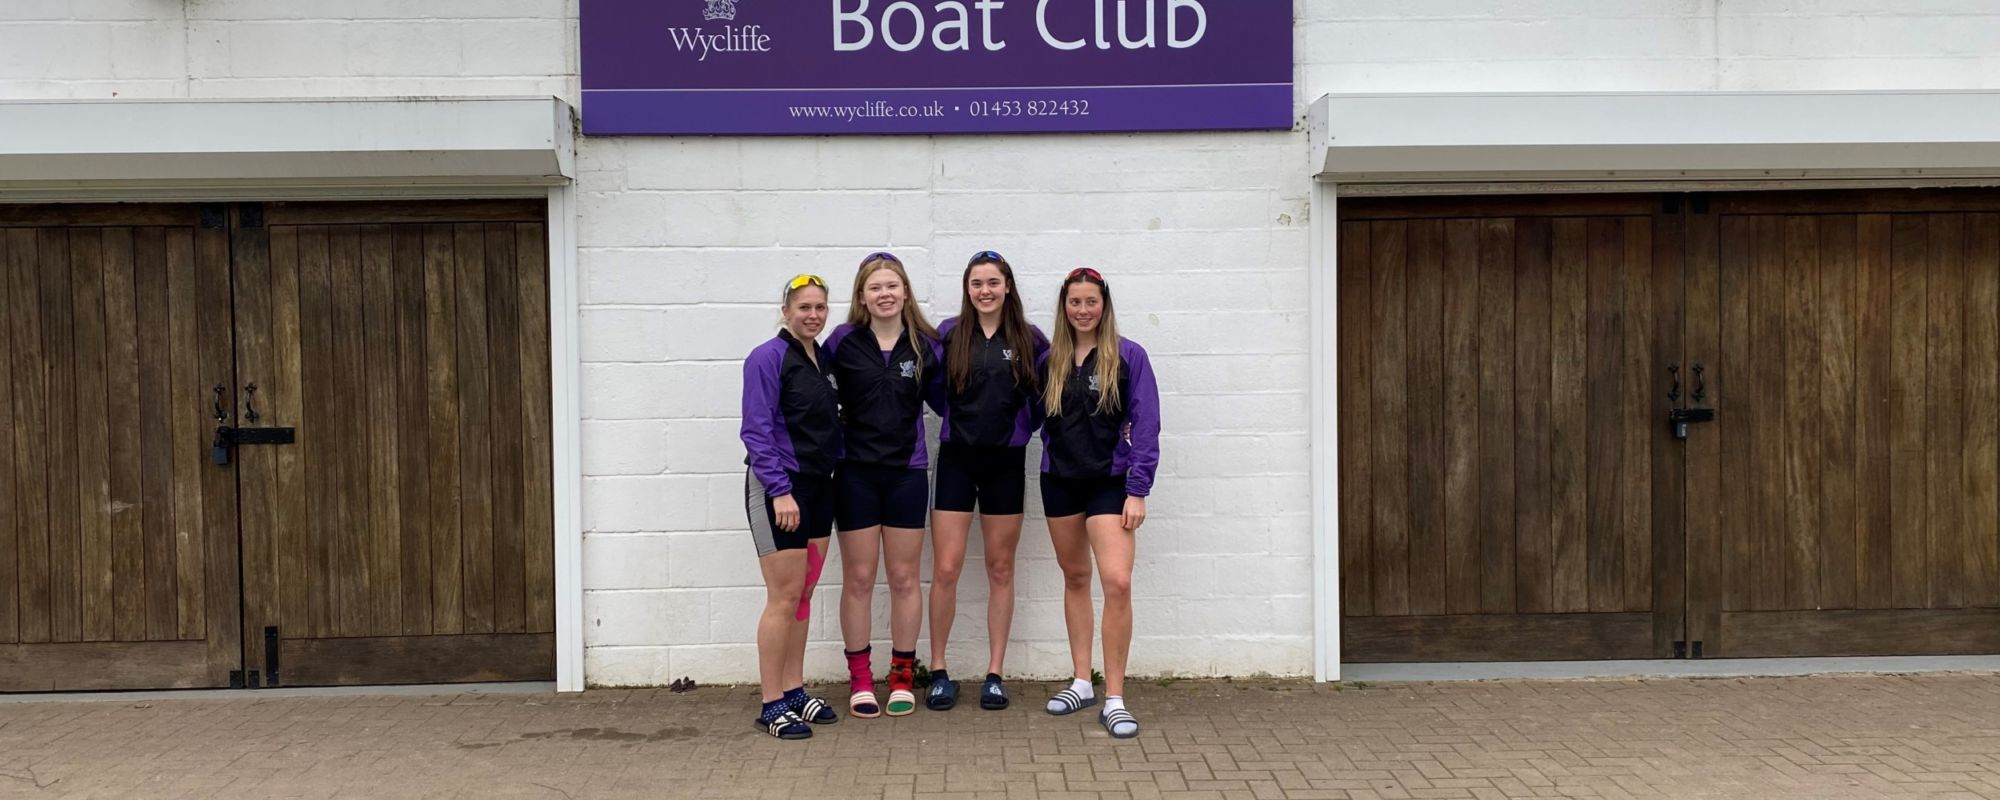 wycliffe college rowers standing outside boat club